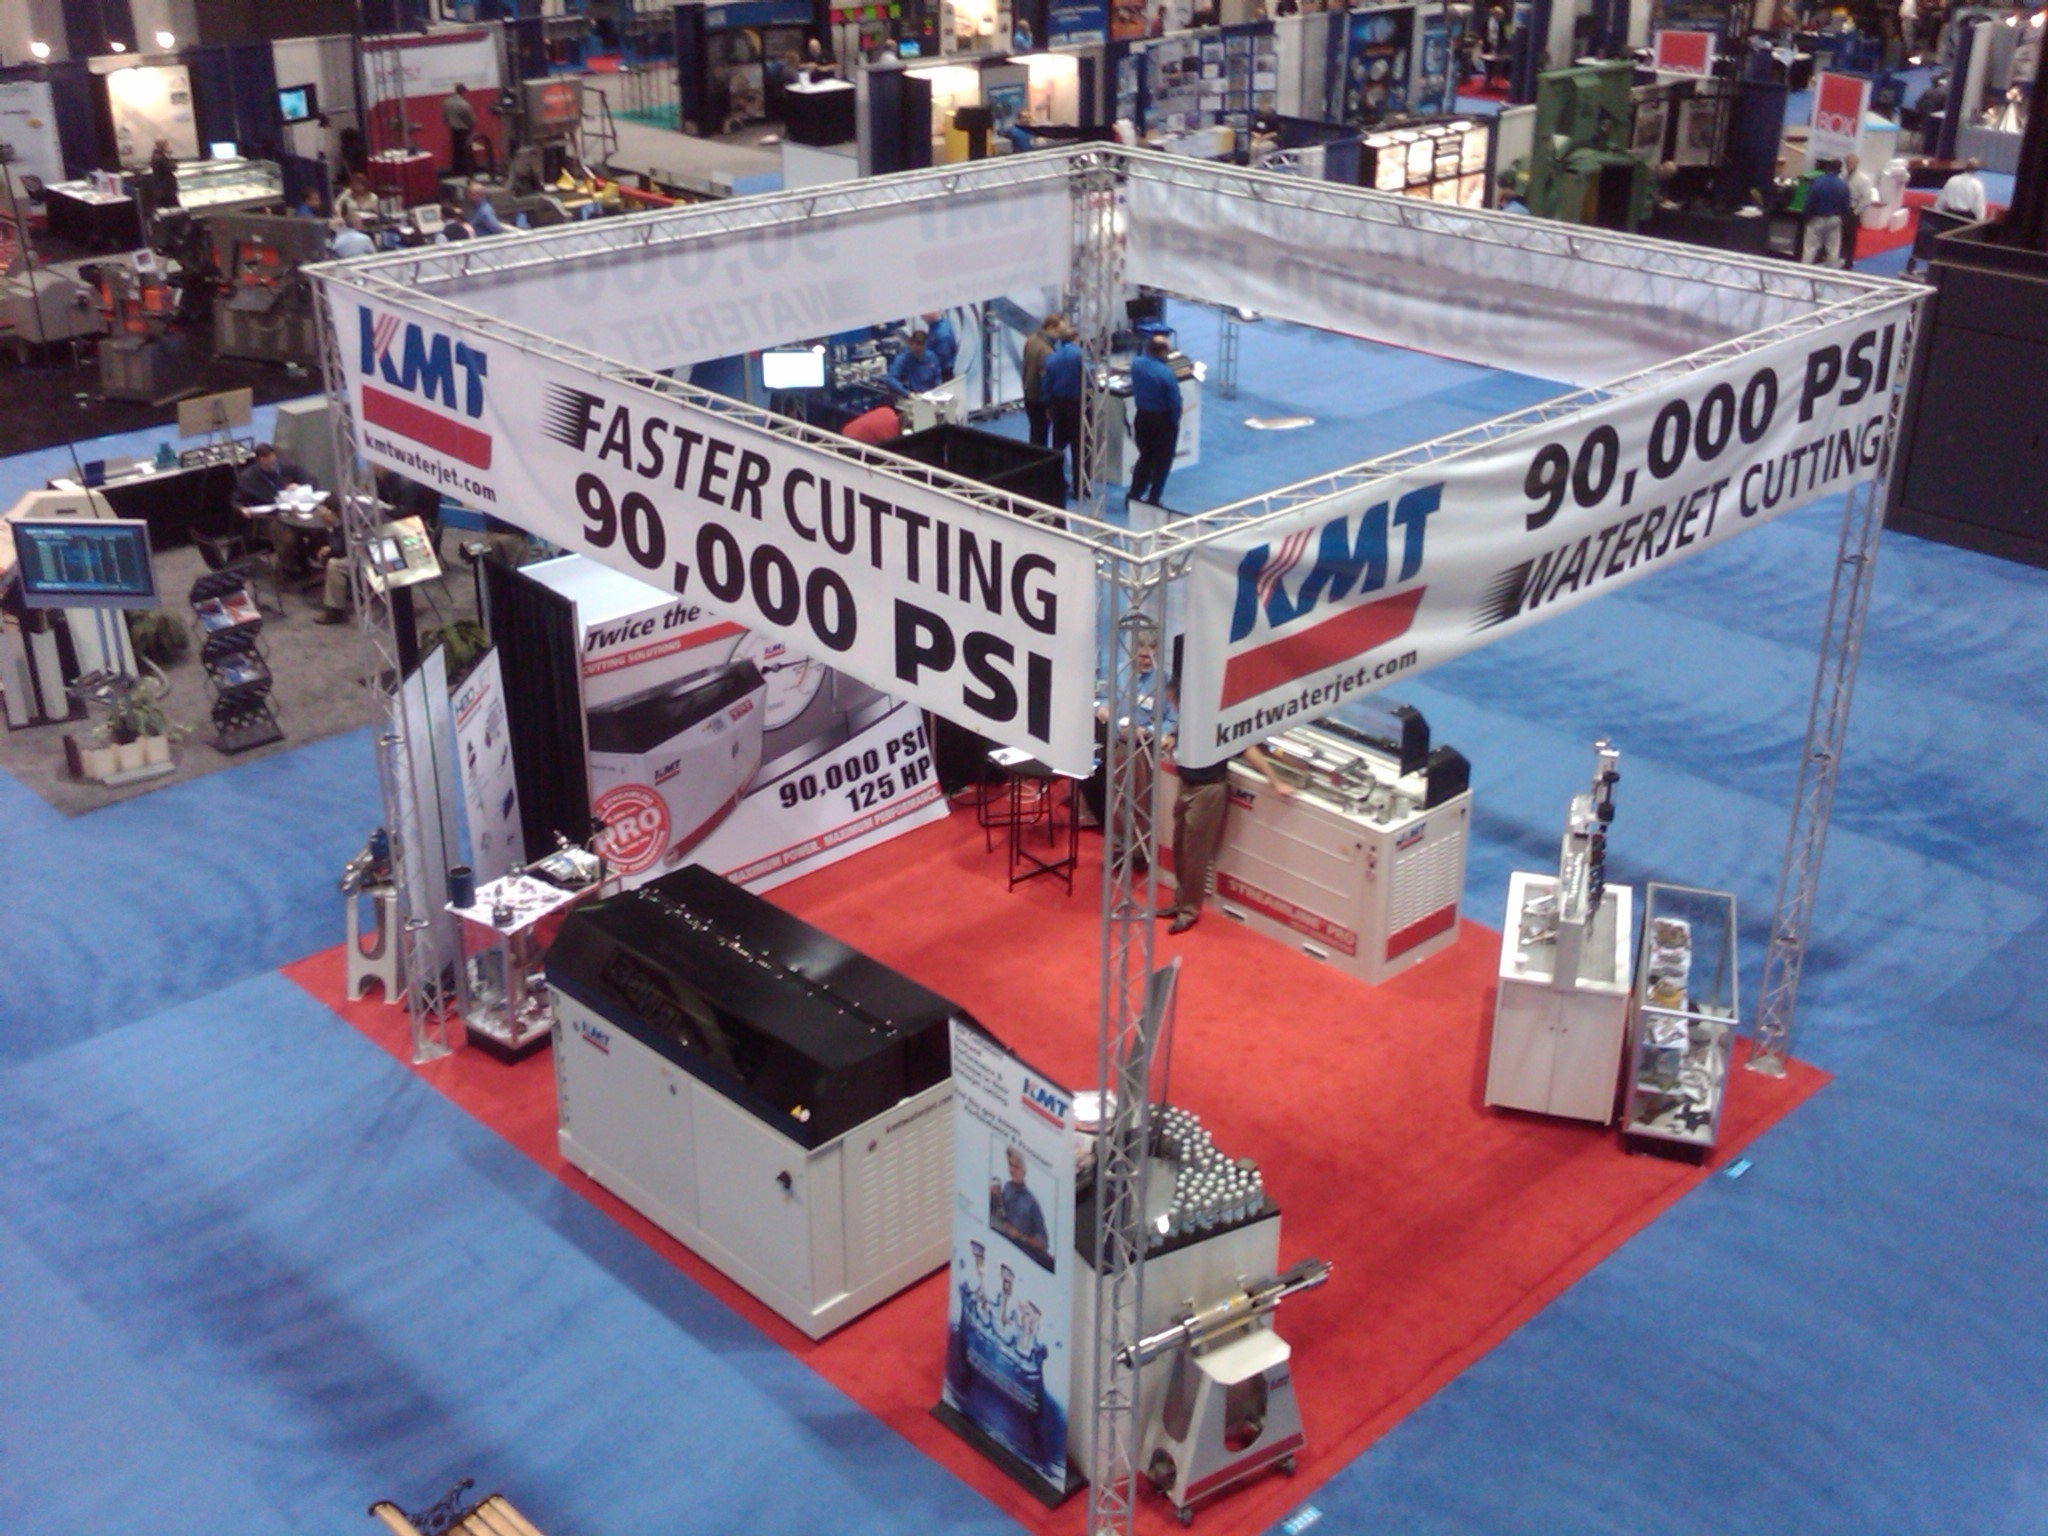 KMT Waterjet Systems showcases Streamline PRO 90,000psi at